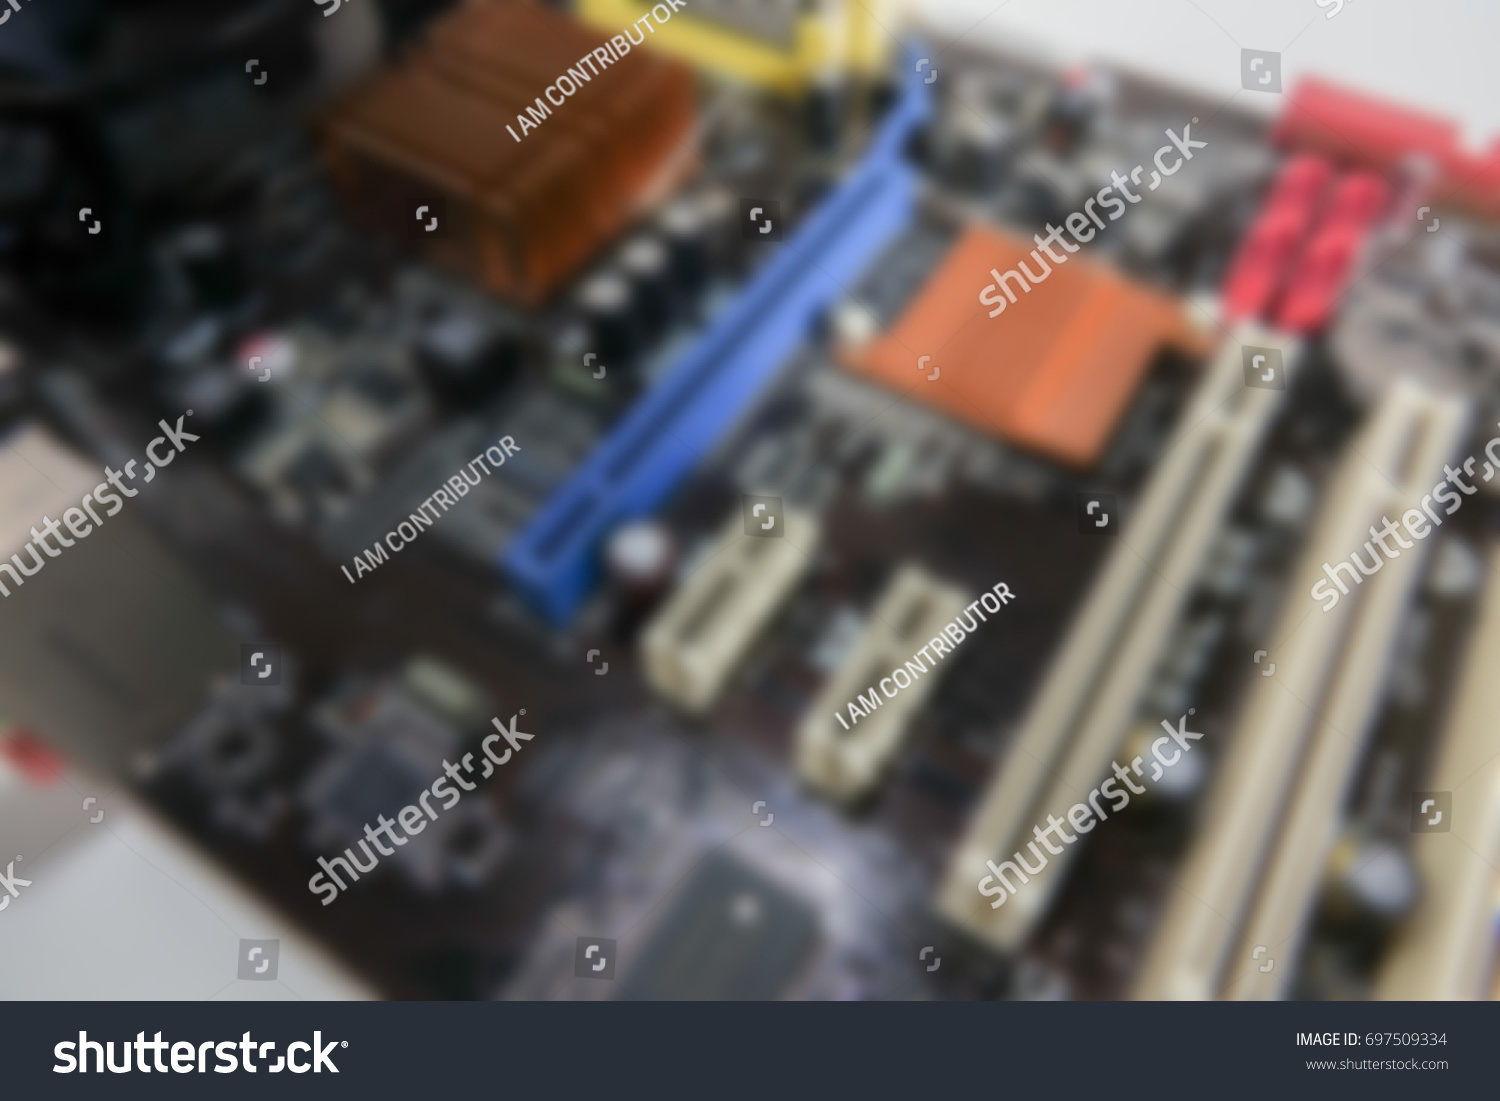 Blurred Pcb Closeup Electronic Circuit Board Stock Photo Edit Now Old Royalty Free Image Of With Cpu Processor